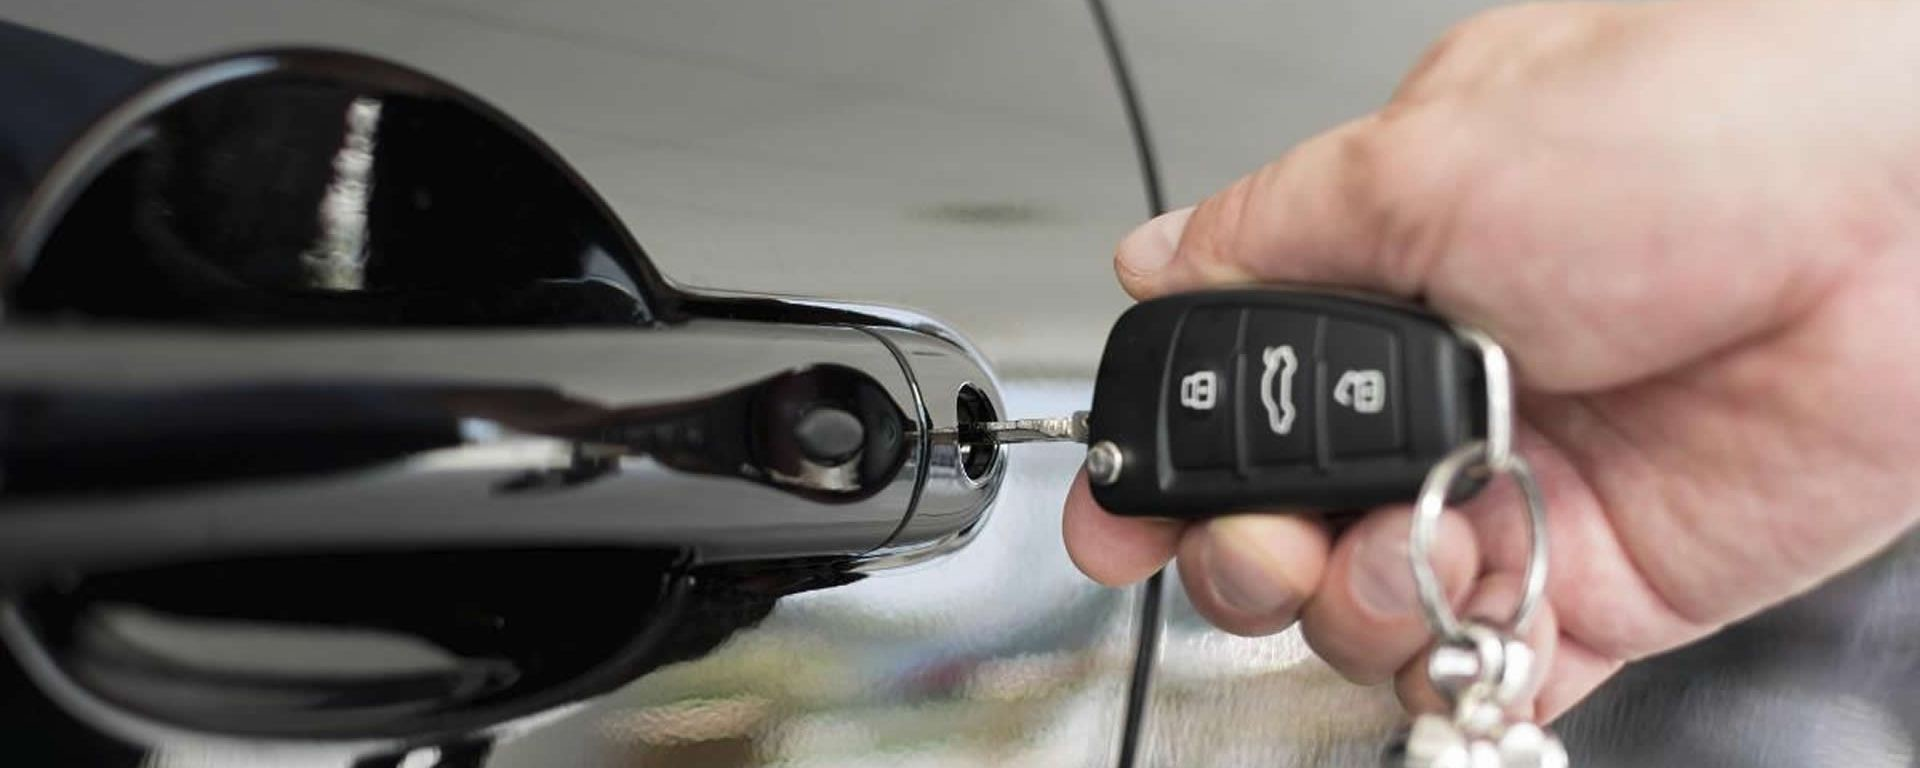 Automotive Locksmith | Automotive Locksmith South San Francisco